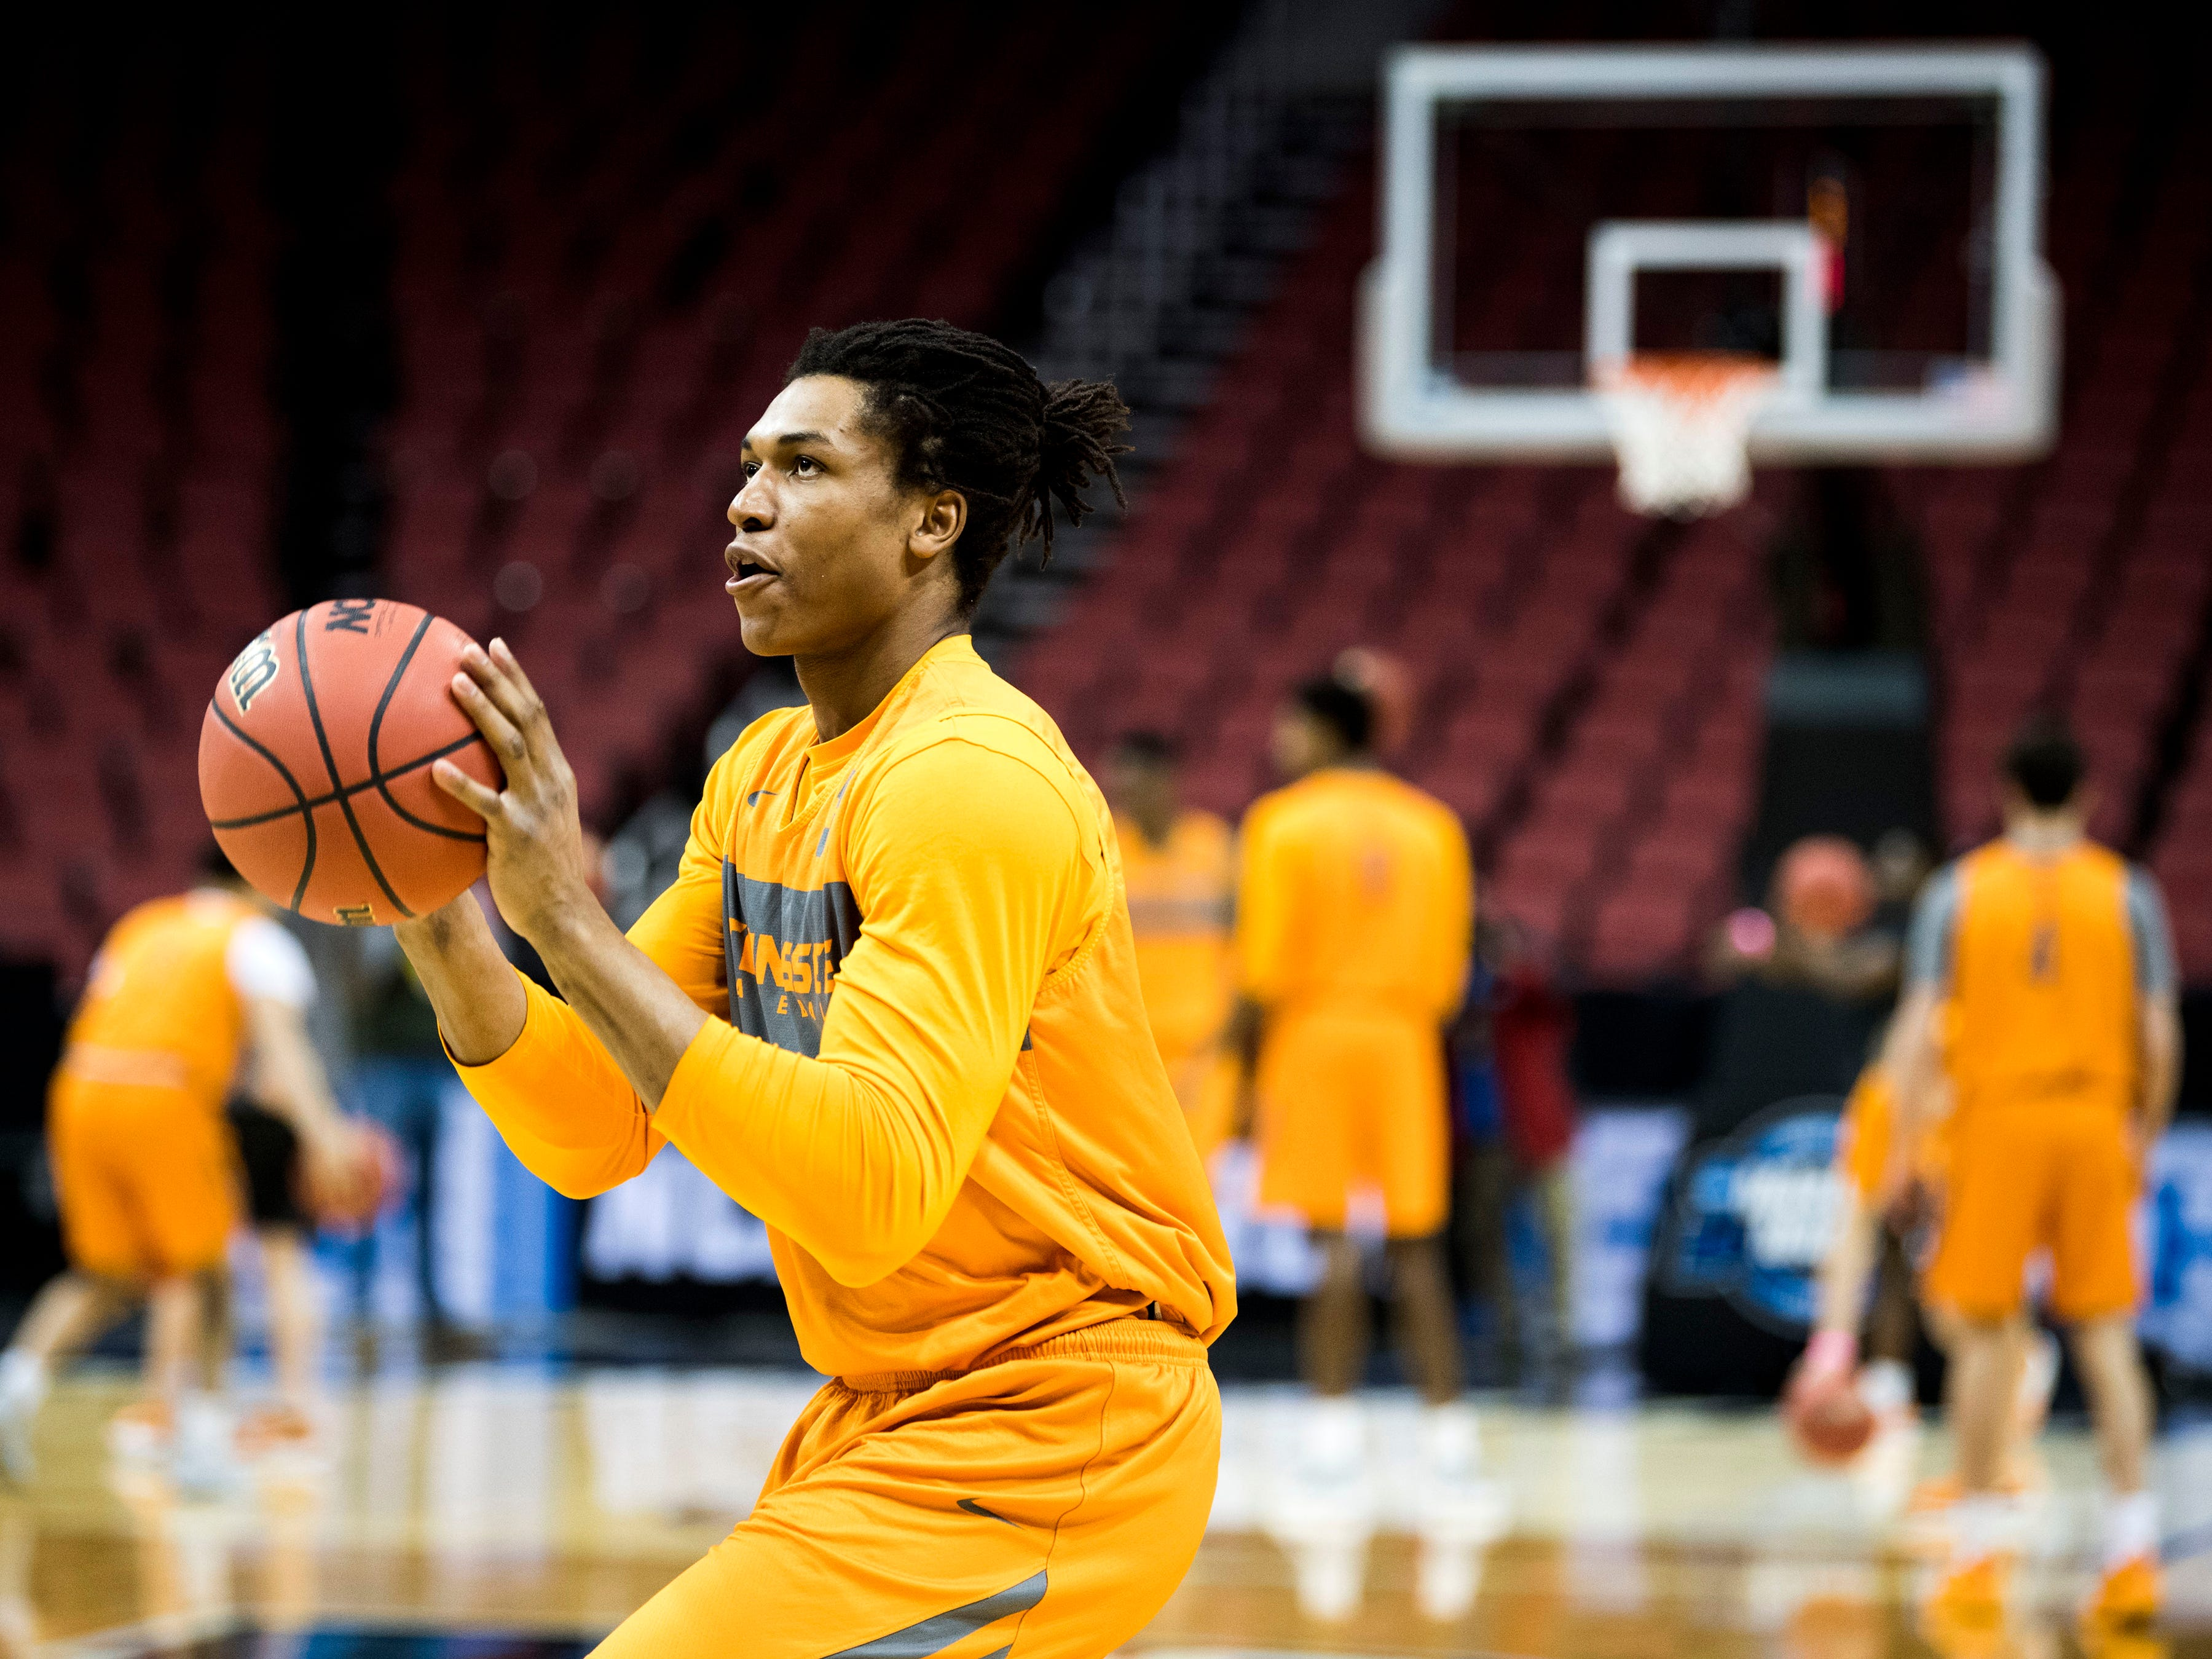 Tennessee guard/forward Yves Pons (35) takes a shot during the Tennessee Volunteers' NCAA Tournament practice at the KFC Yum! Center in Louisville, Ky., on Wednesday, March 27, 2019.